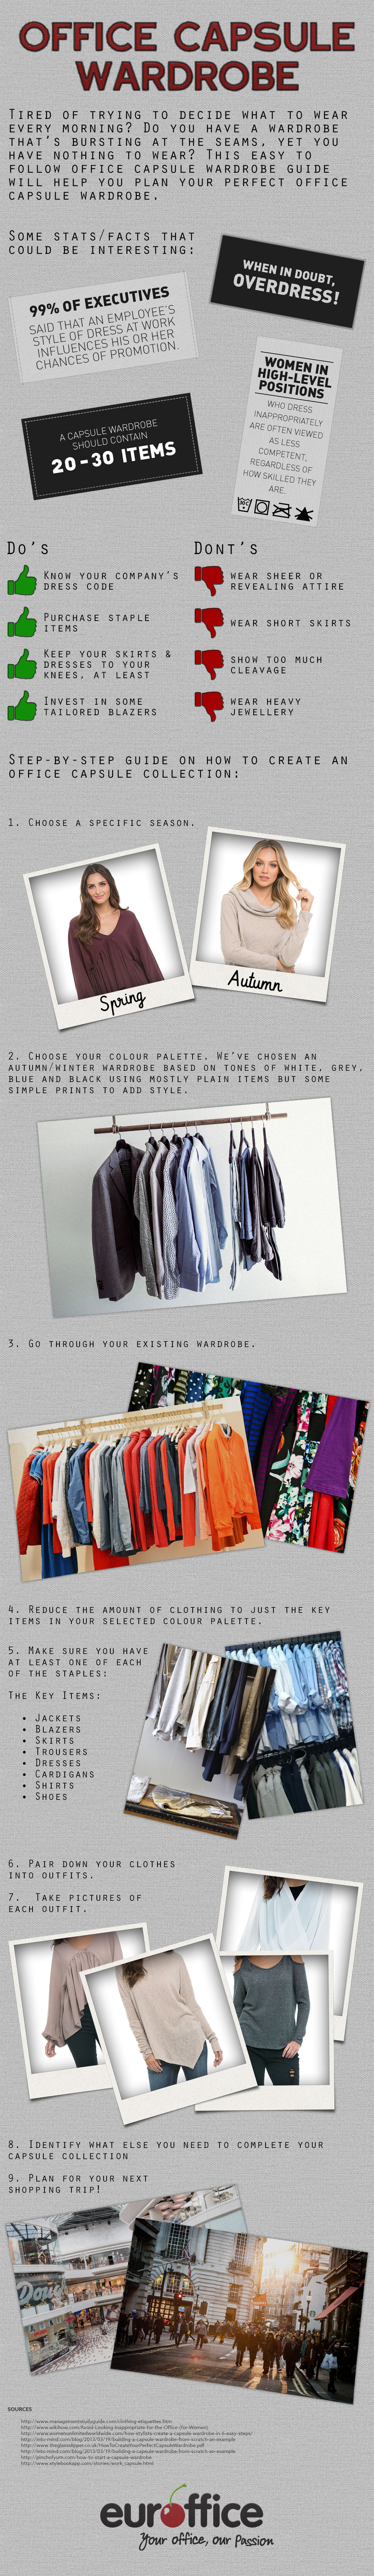 How To Have The Perfect Office Wardrobe - Infographic